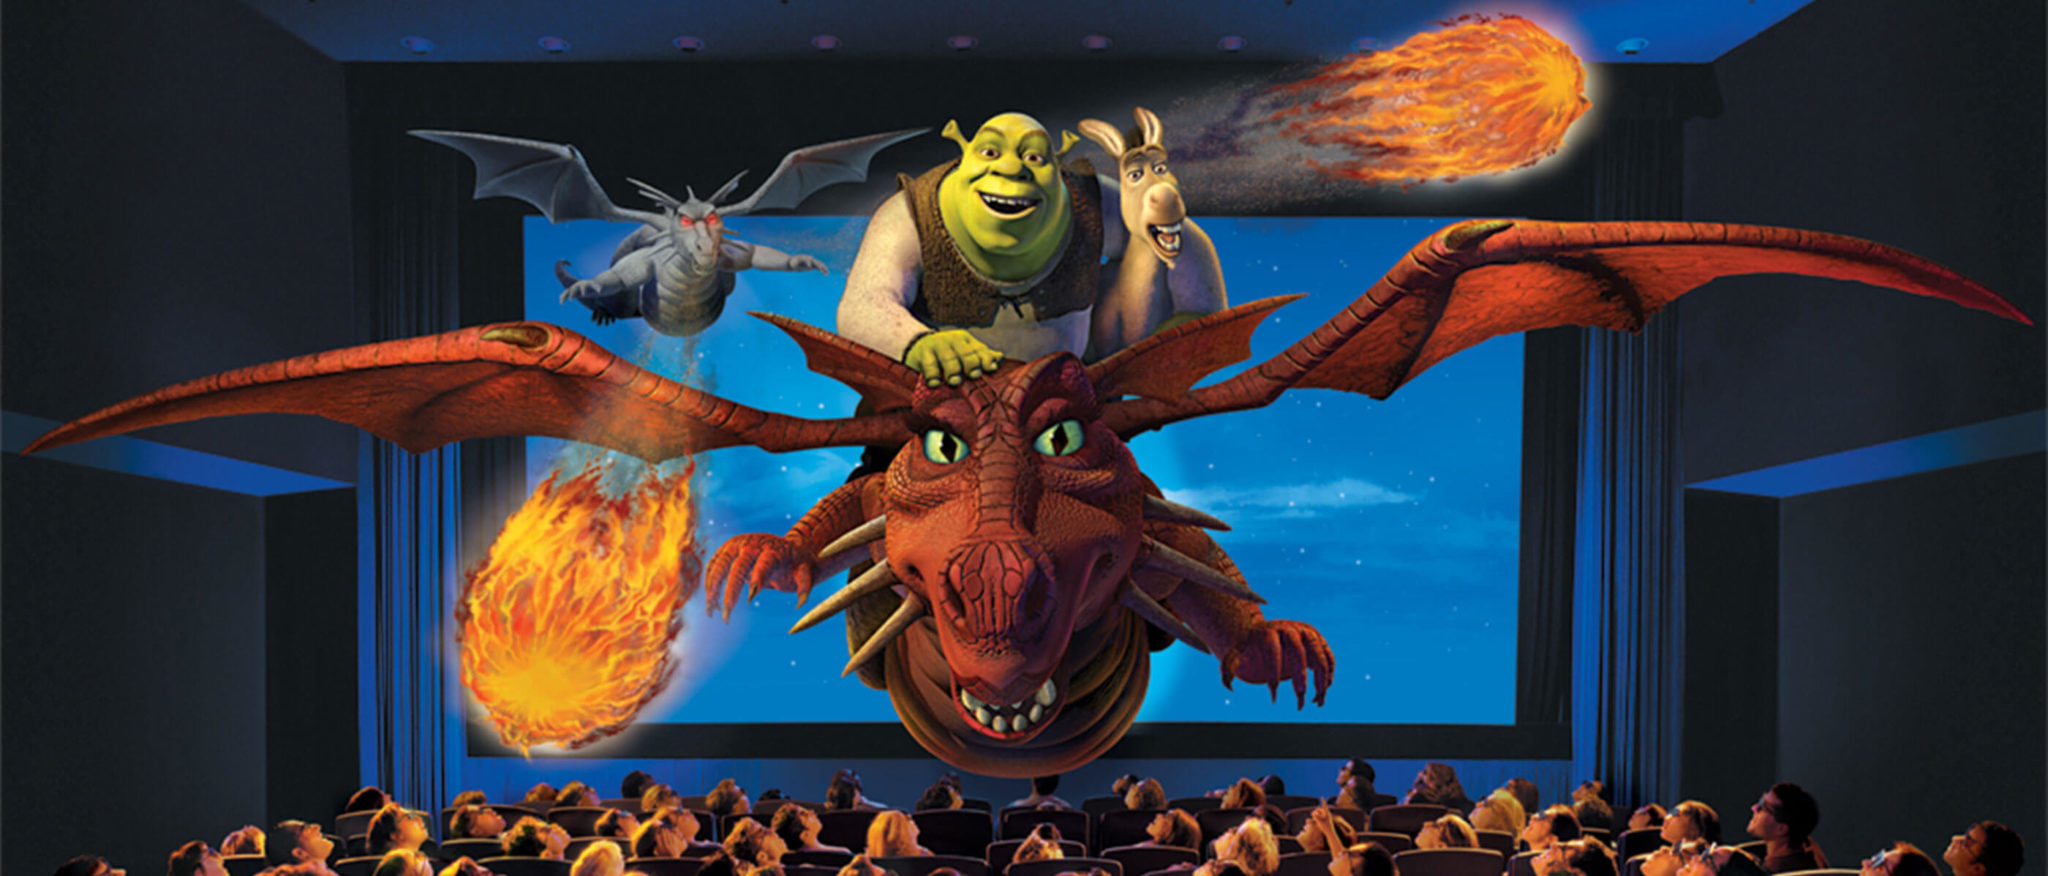 Shrek 4D ride Universal Studios Hollywood attraction and tips